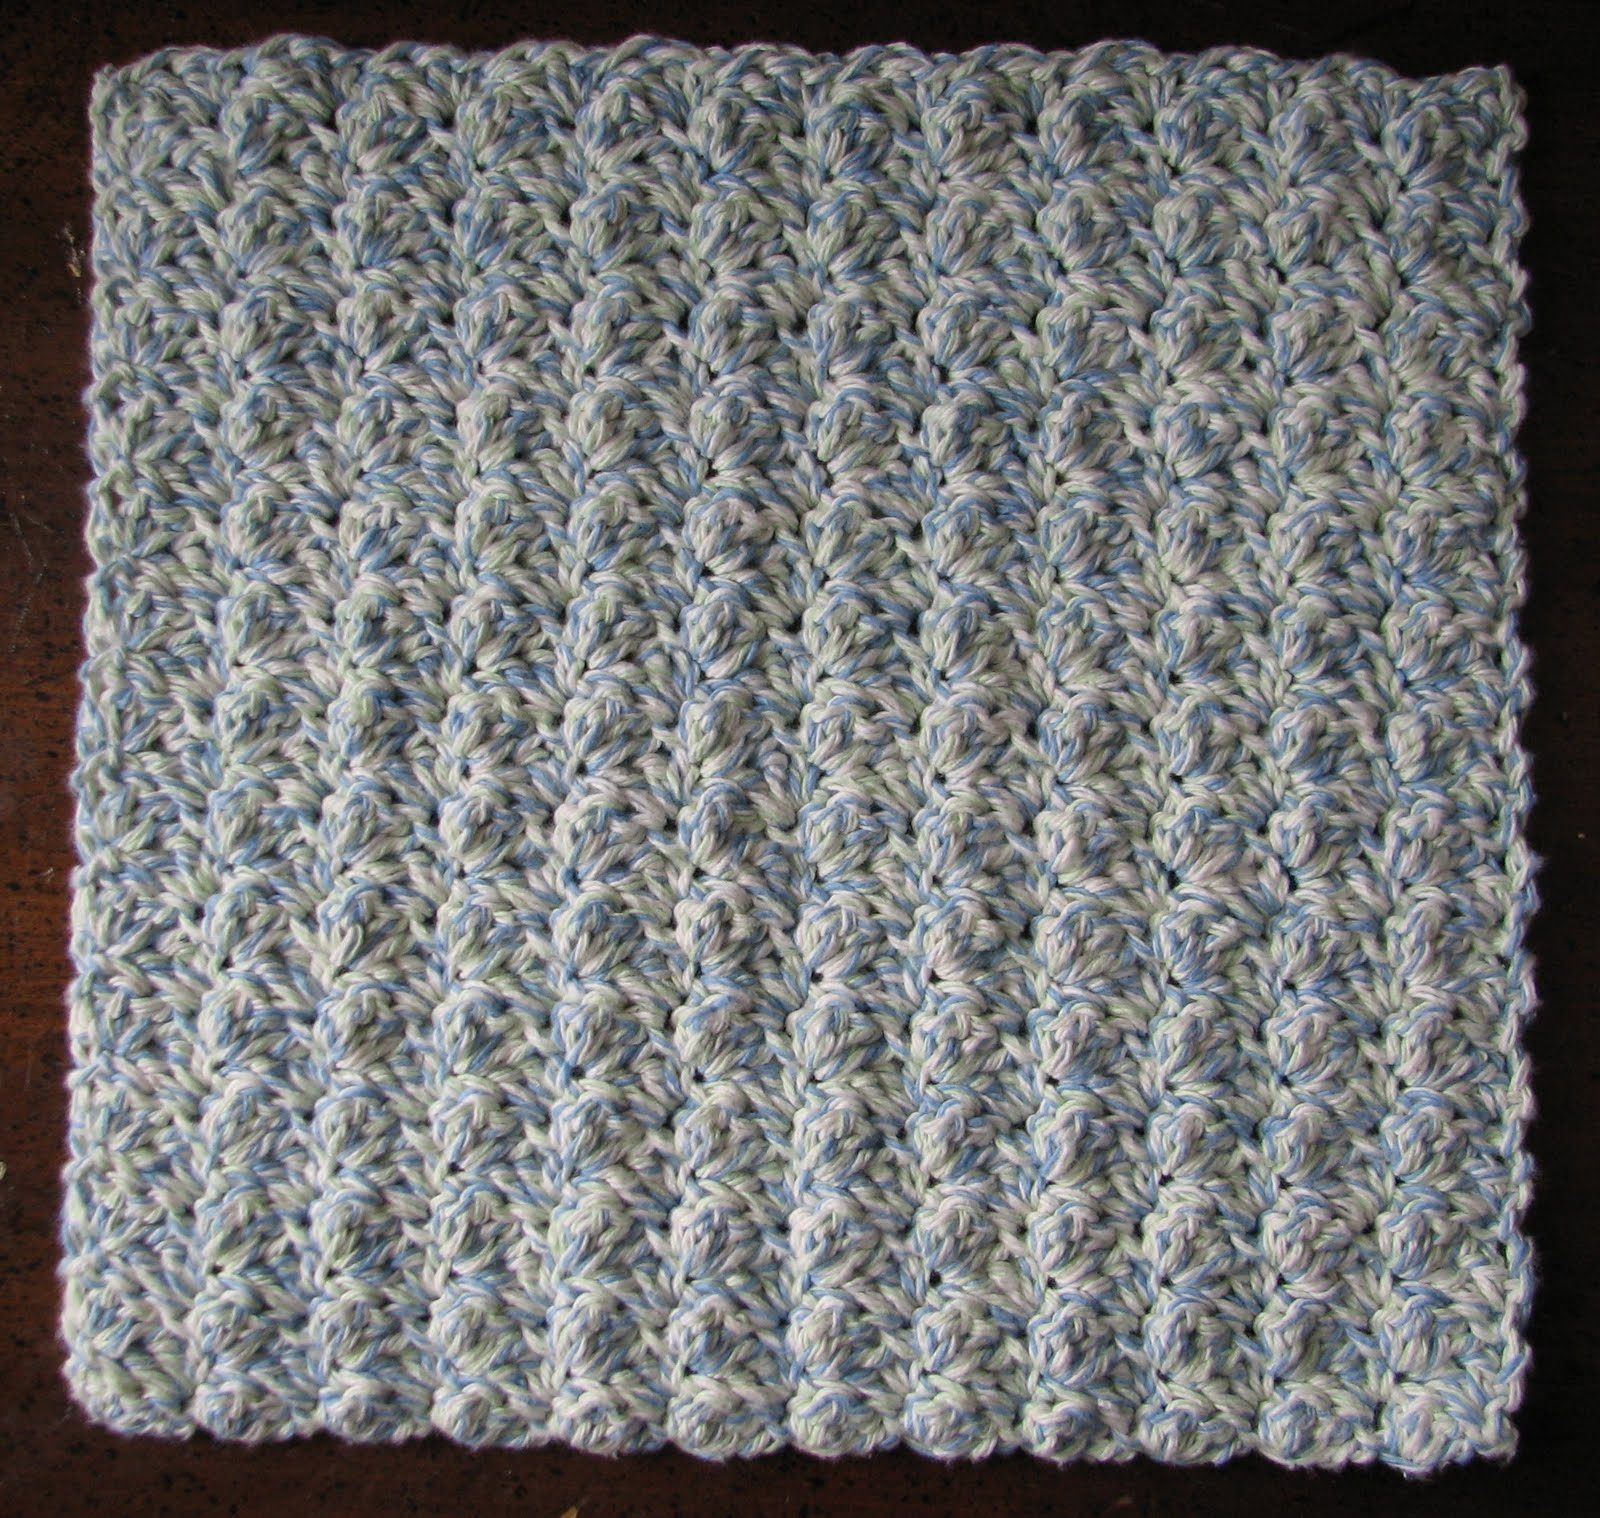 Crochet Stitches Ripple Afghan : ... Ripple Stitch Dishcloth - free crochet pattern by Ambassador Crochet